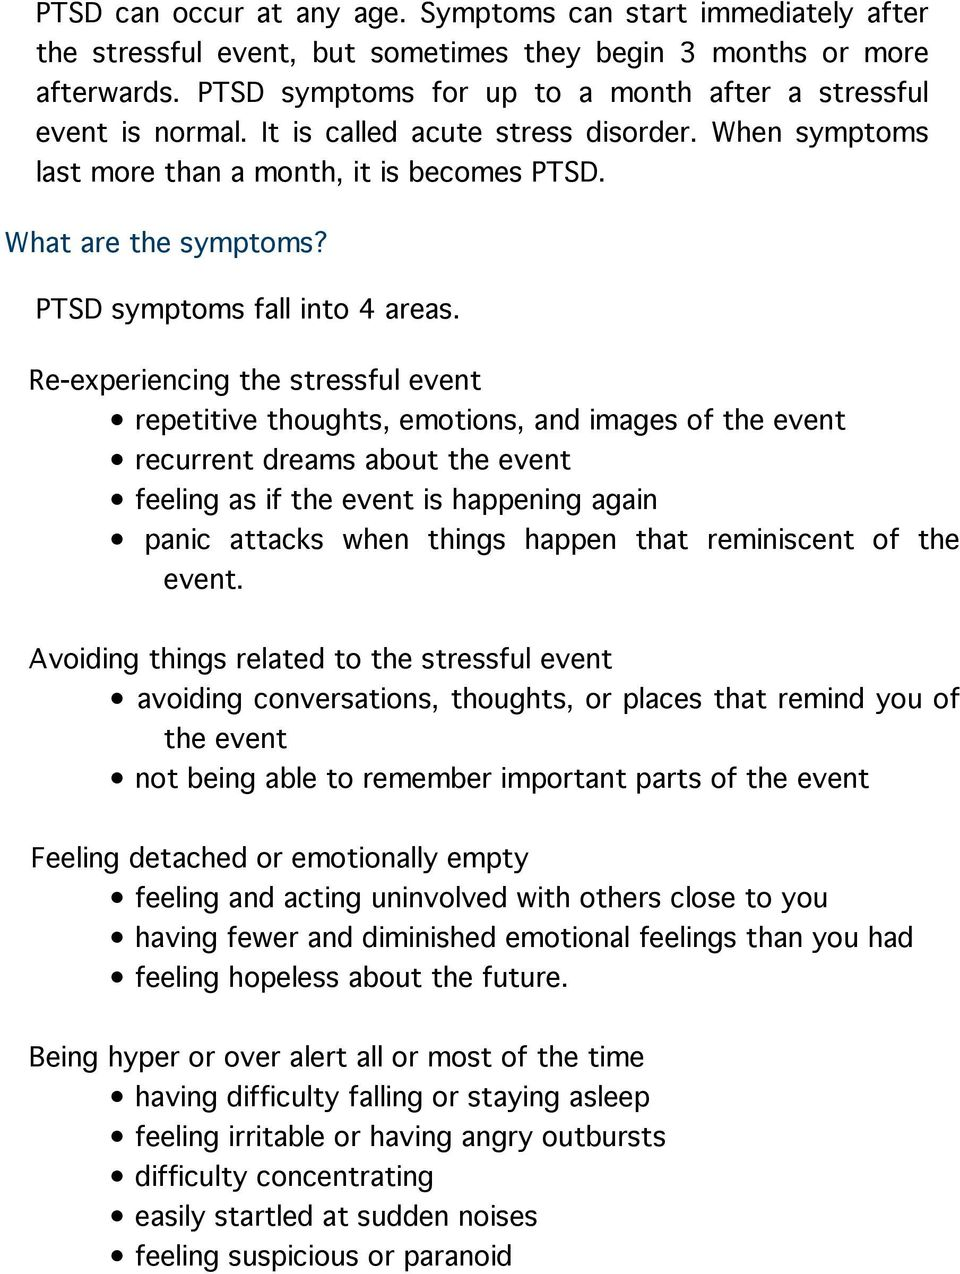 PTSD symptoms fall into 4 areas.